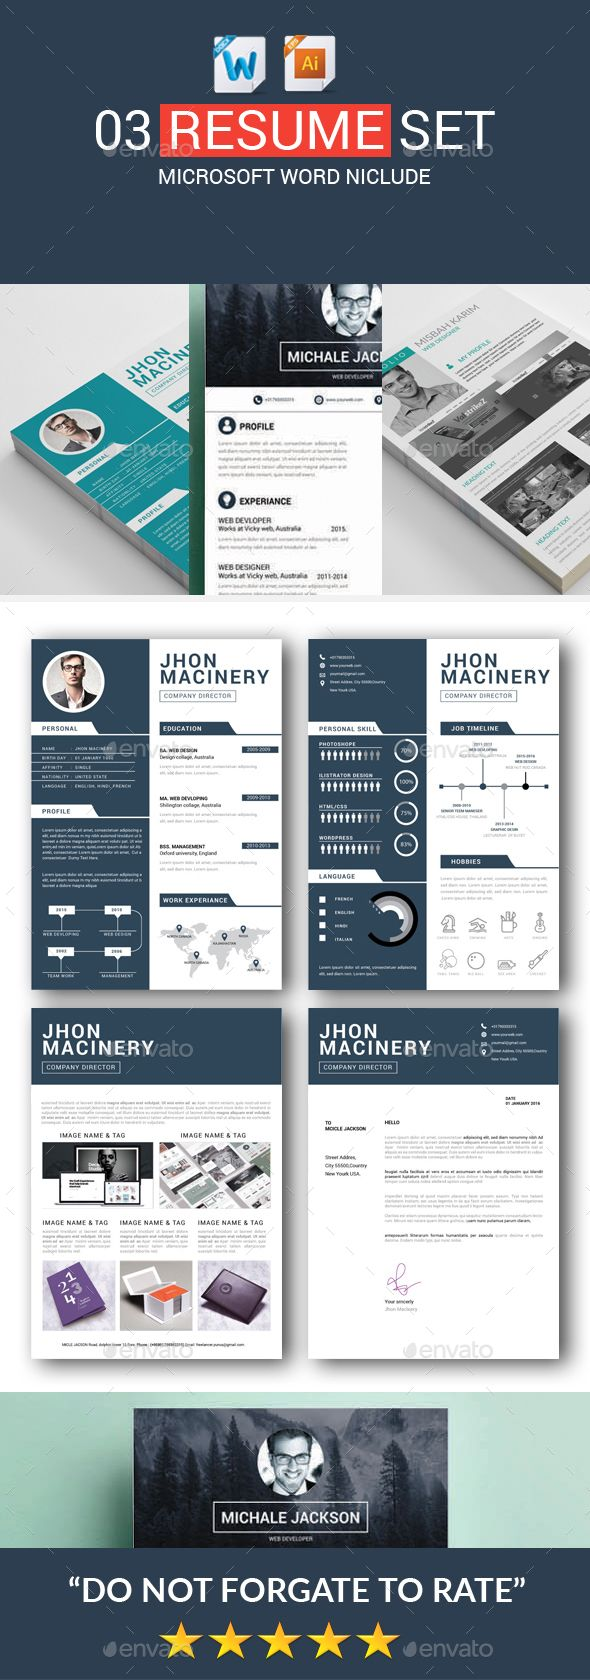 103 best CV images on Pinterest   Cv template, Resume templates and ...